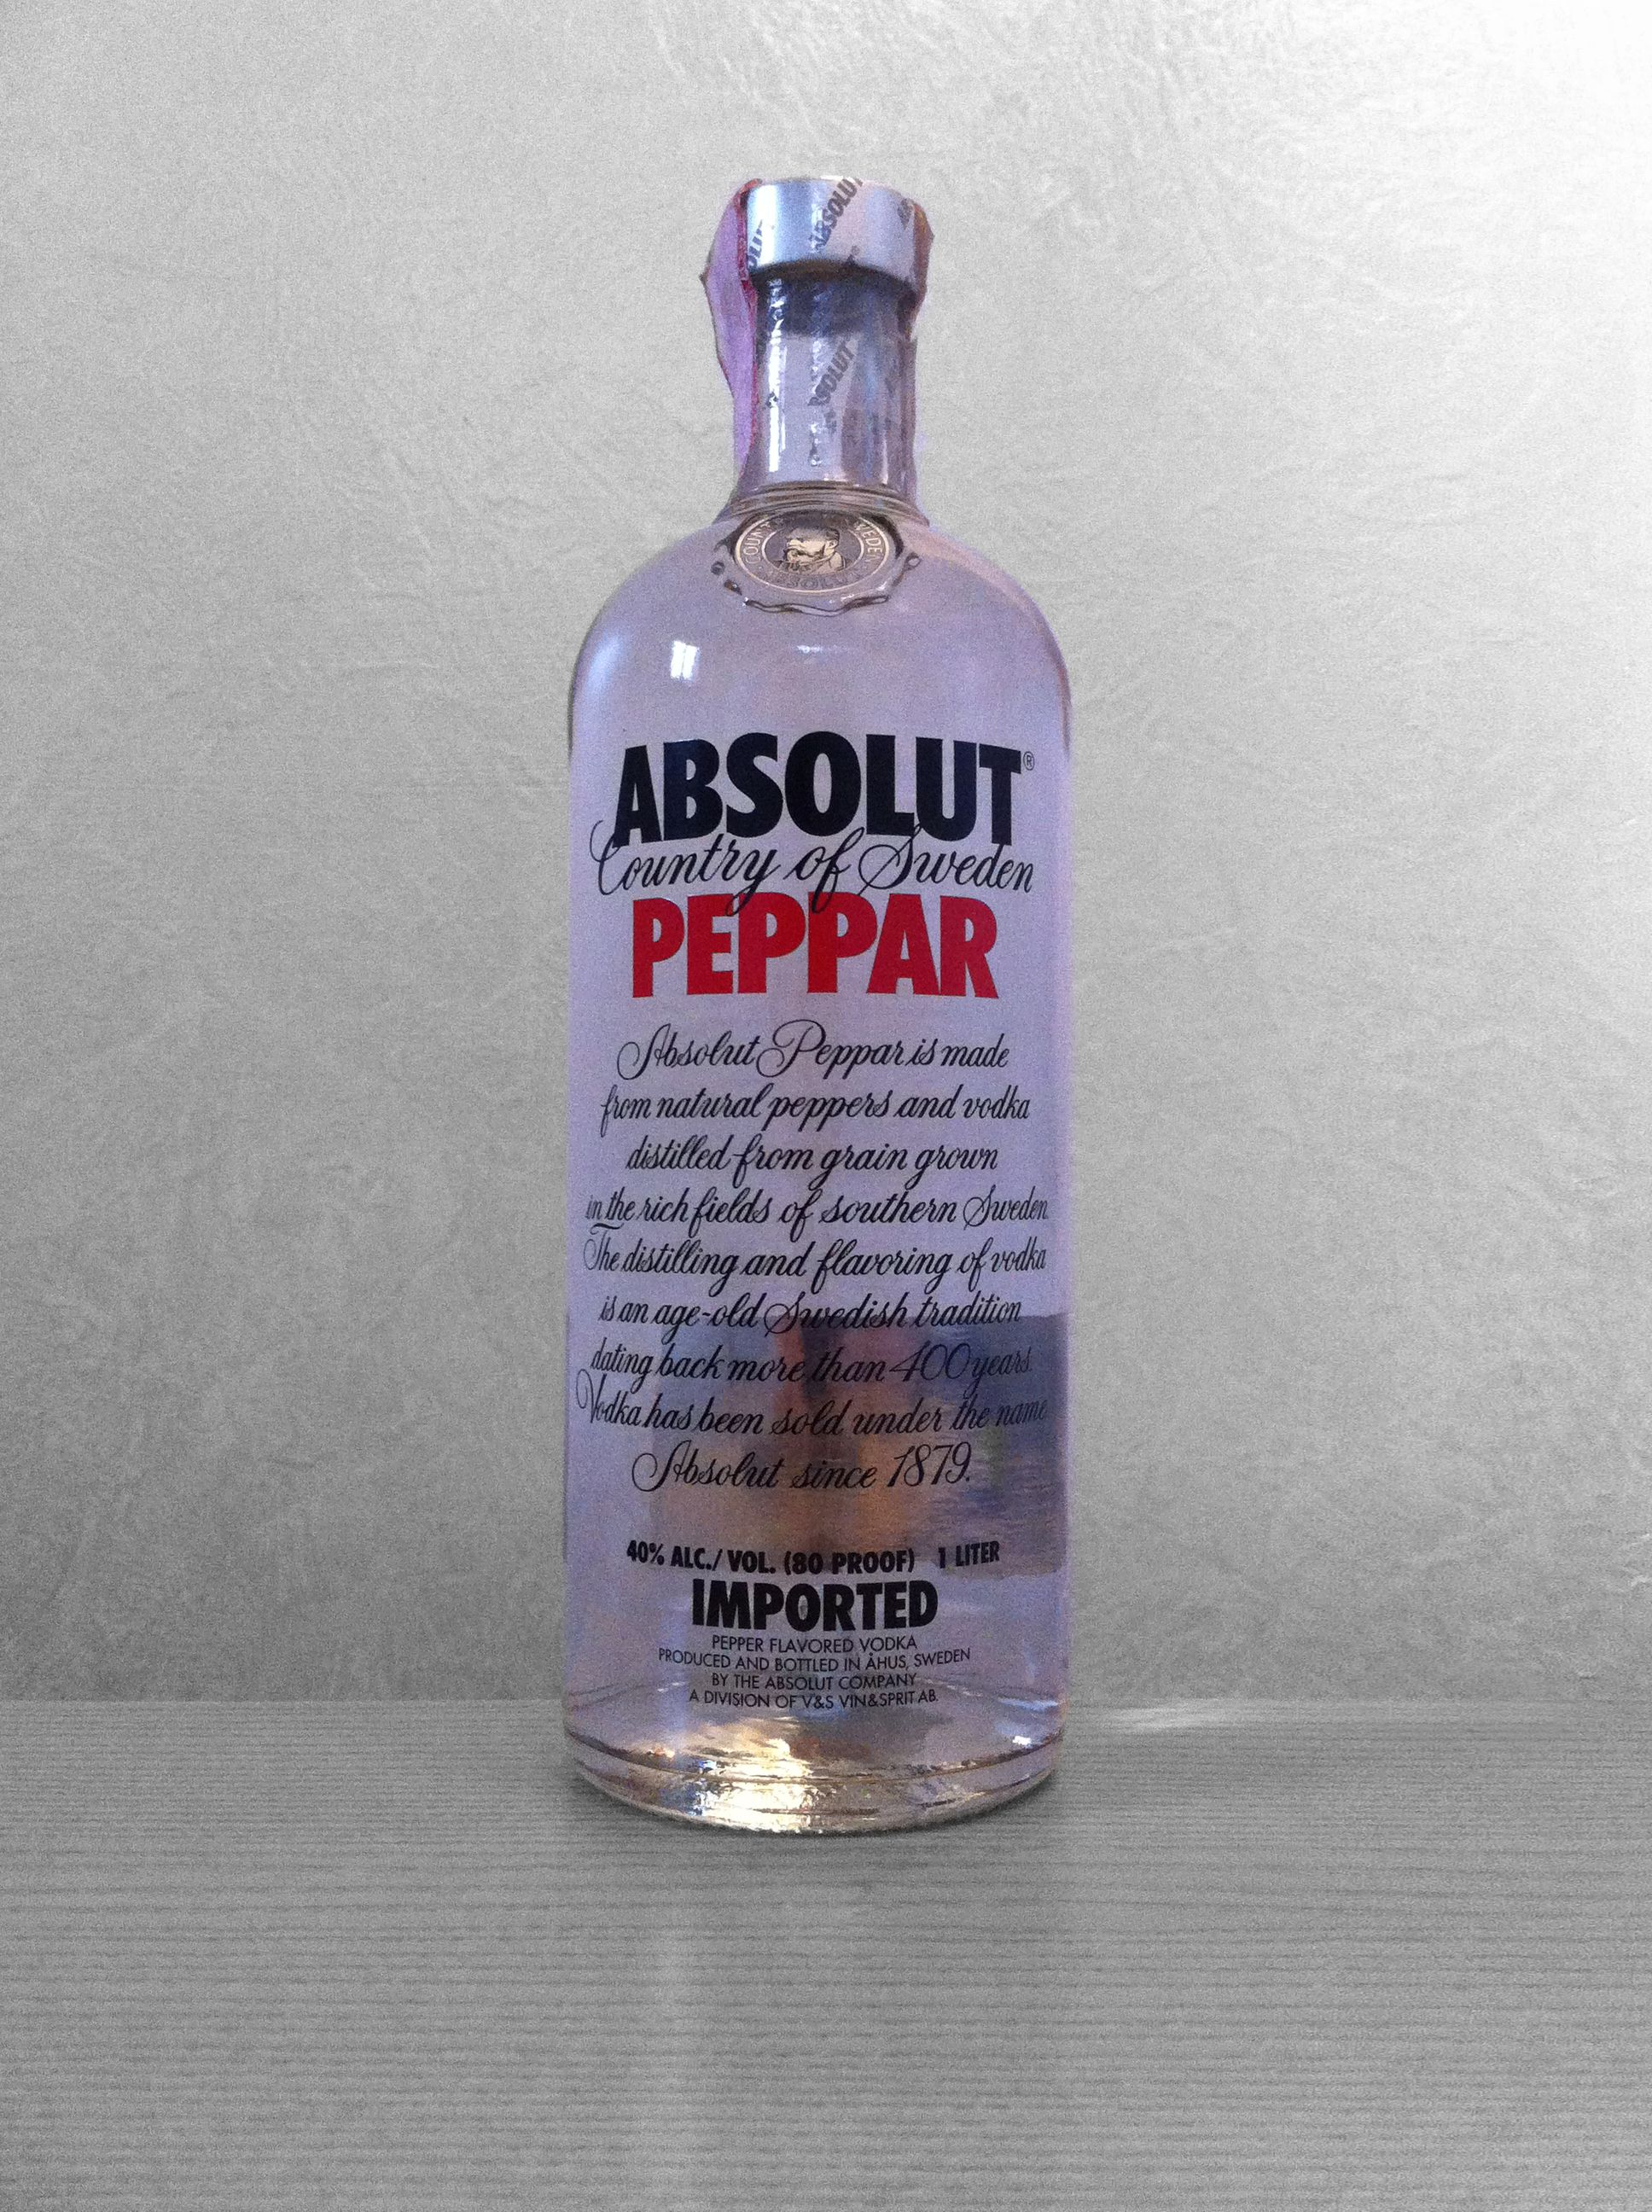 Absolut #Peppar #Vodka | Perfect #Gift for this #Festive